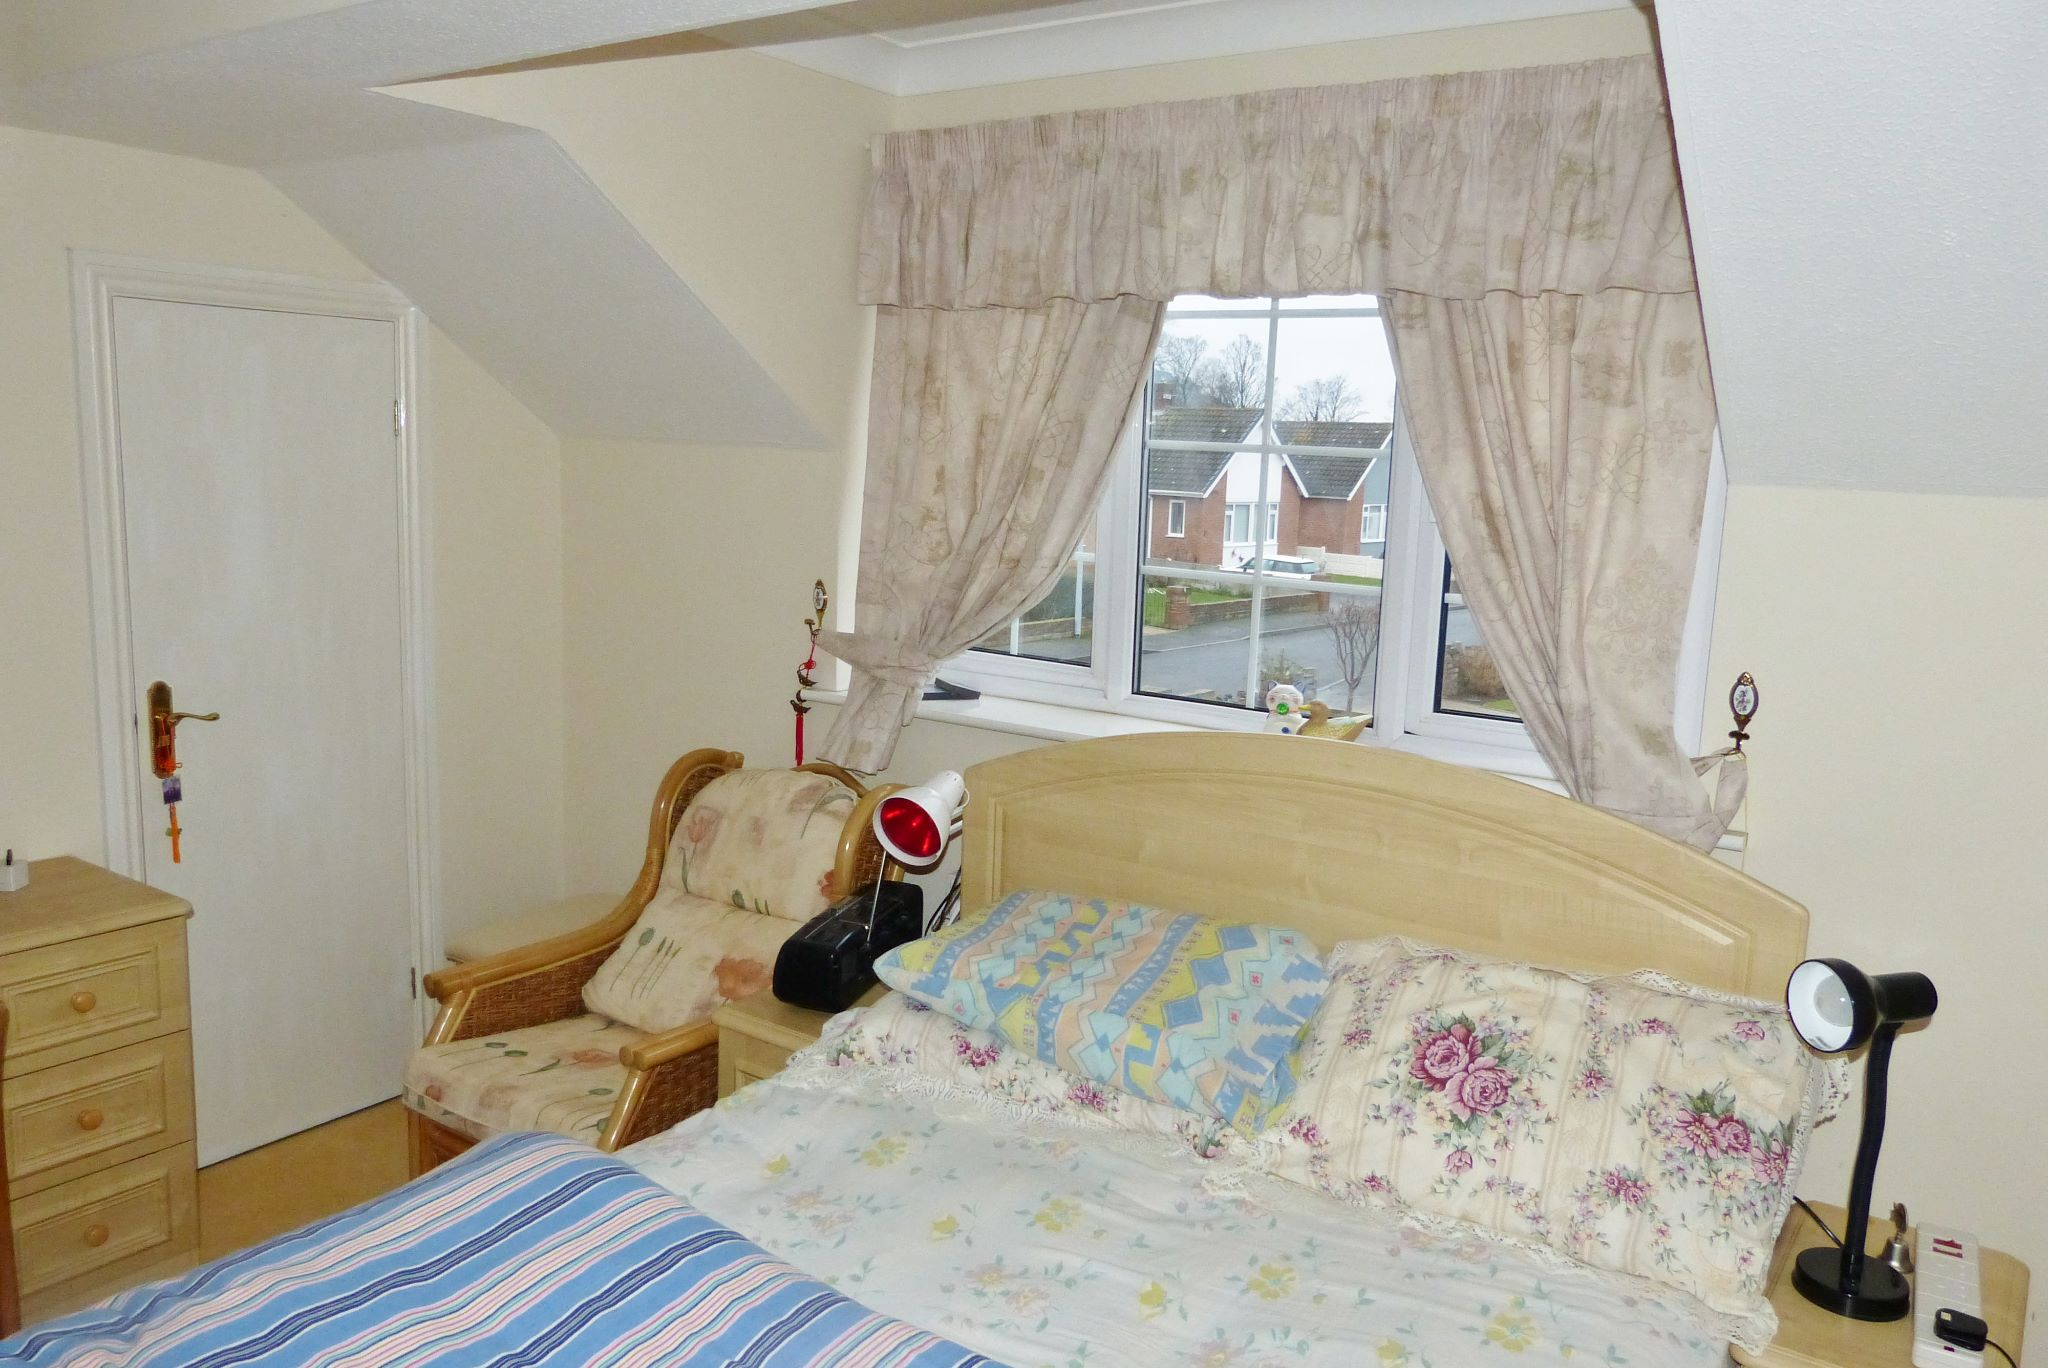 4 bedroom detached house For Sale in Abergele - Photograph 15